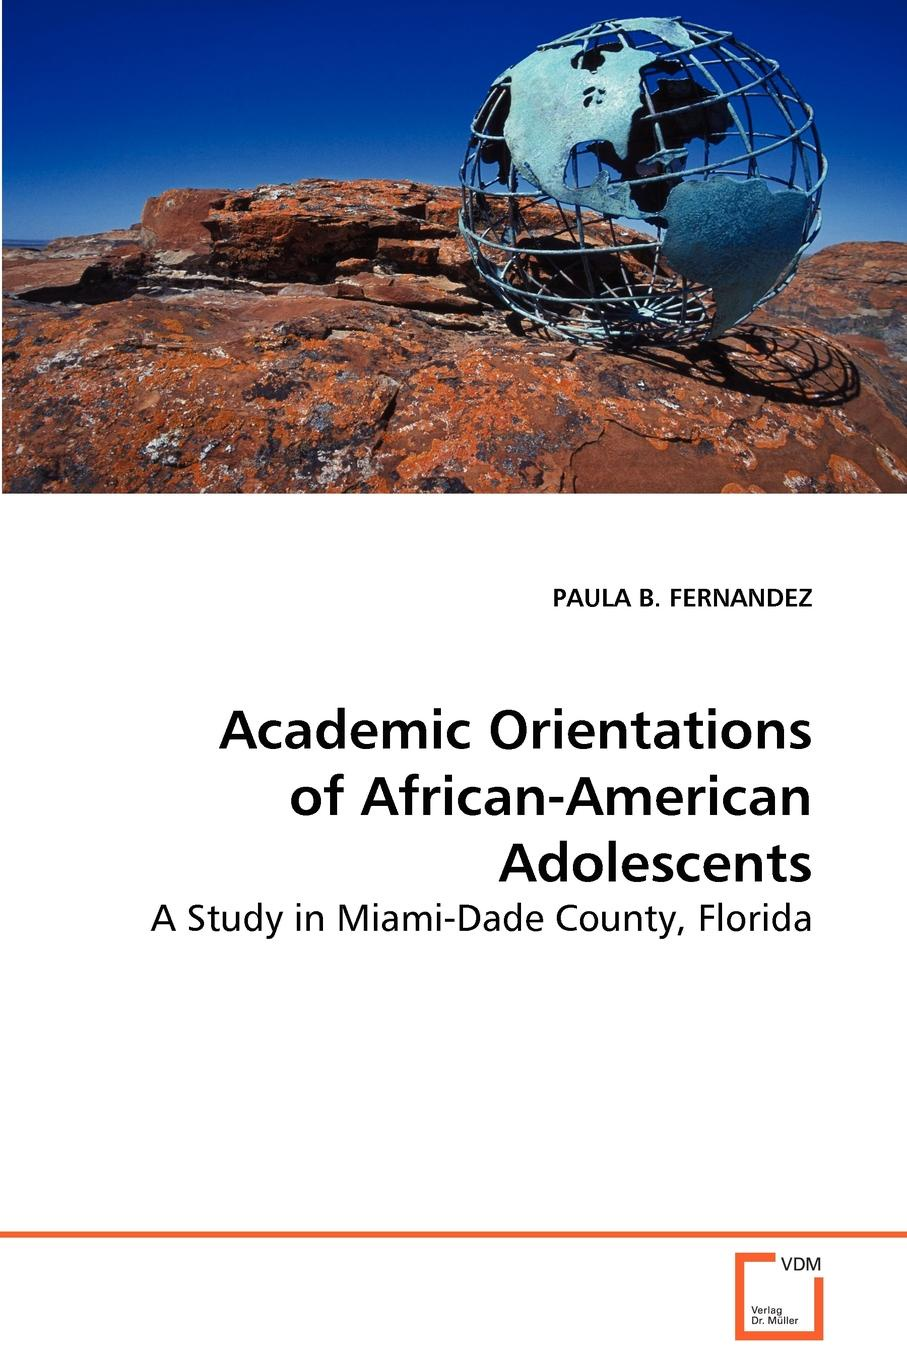 Paula B. Fernandez Academic Orientations of African-American Adolescents entrepreneurial orientations of rural women